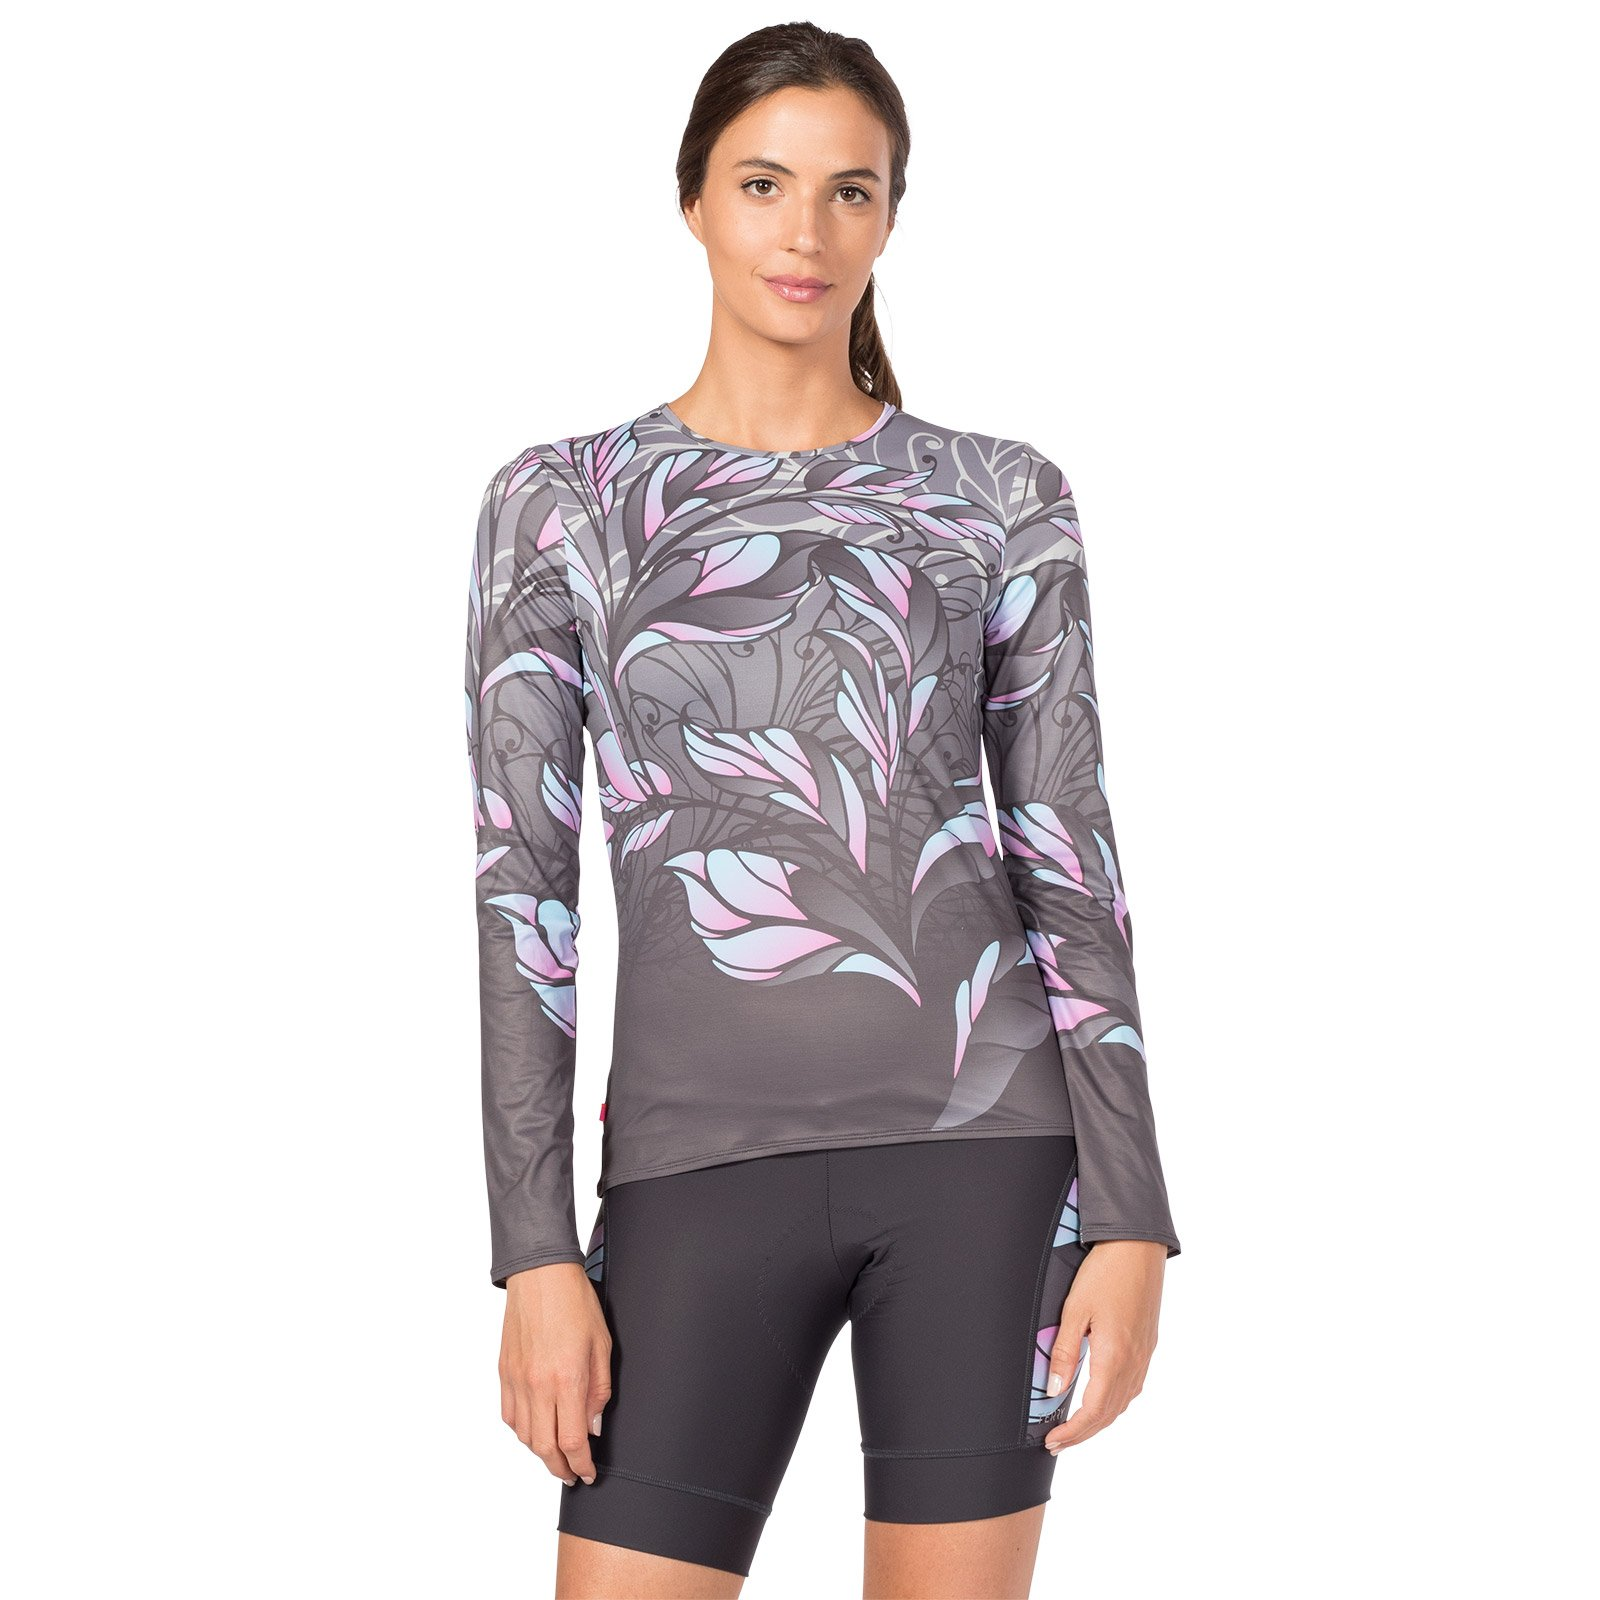 Terry Soleil Long Sleeve Cycling Top - #1 Selling Women's Cycling Top Lightweight Long-Sleeve Bicycle Jersey, Sports Dry Athletic Fit Layer T-Shirt - UPF 50+ - Painted Lady/Silver - Medium